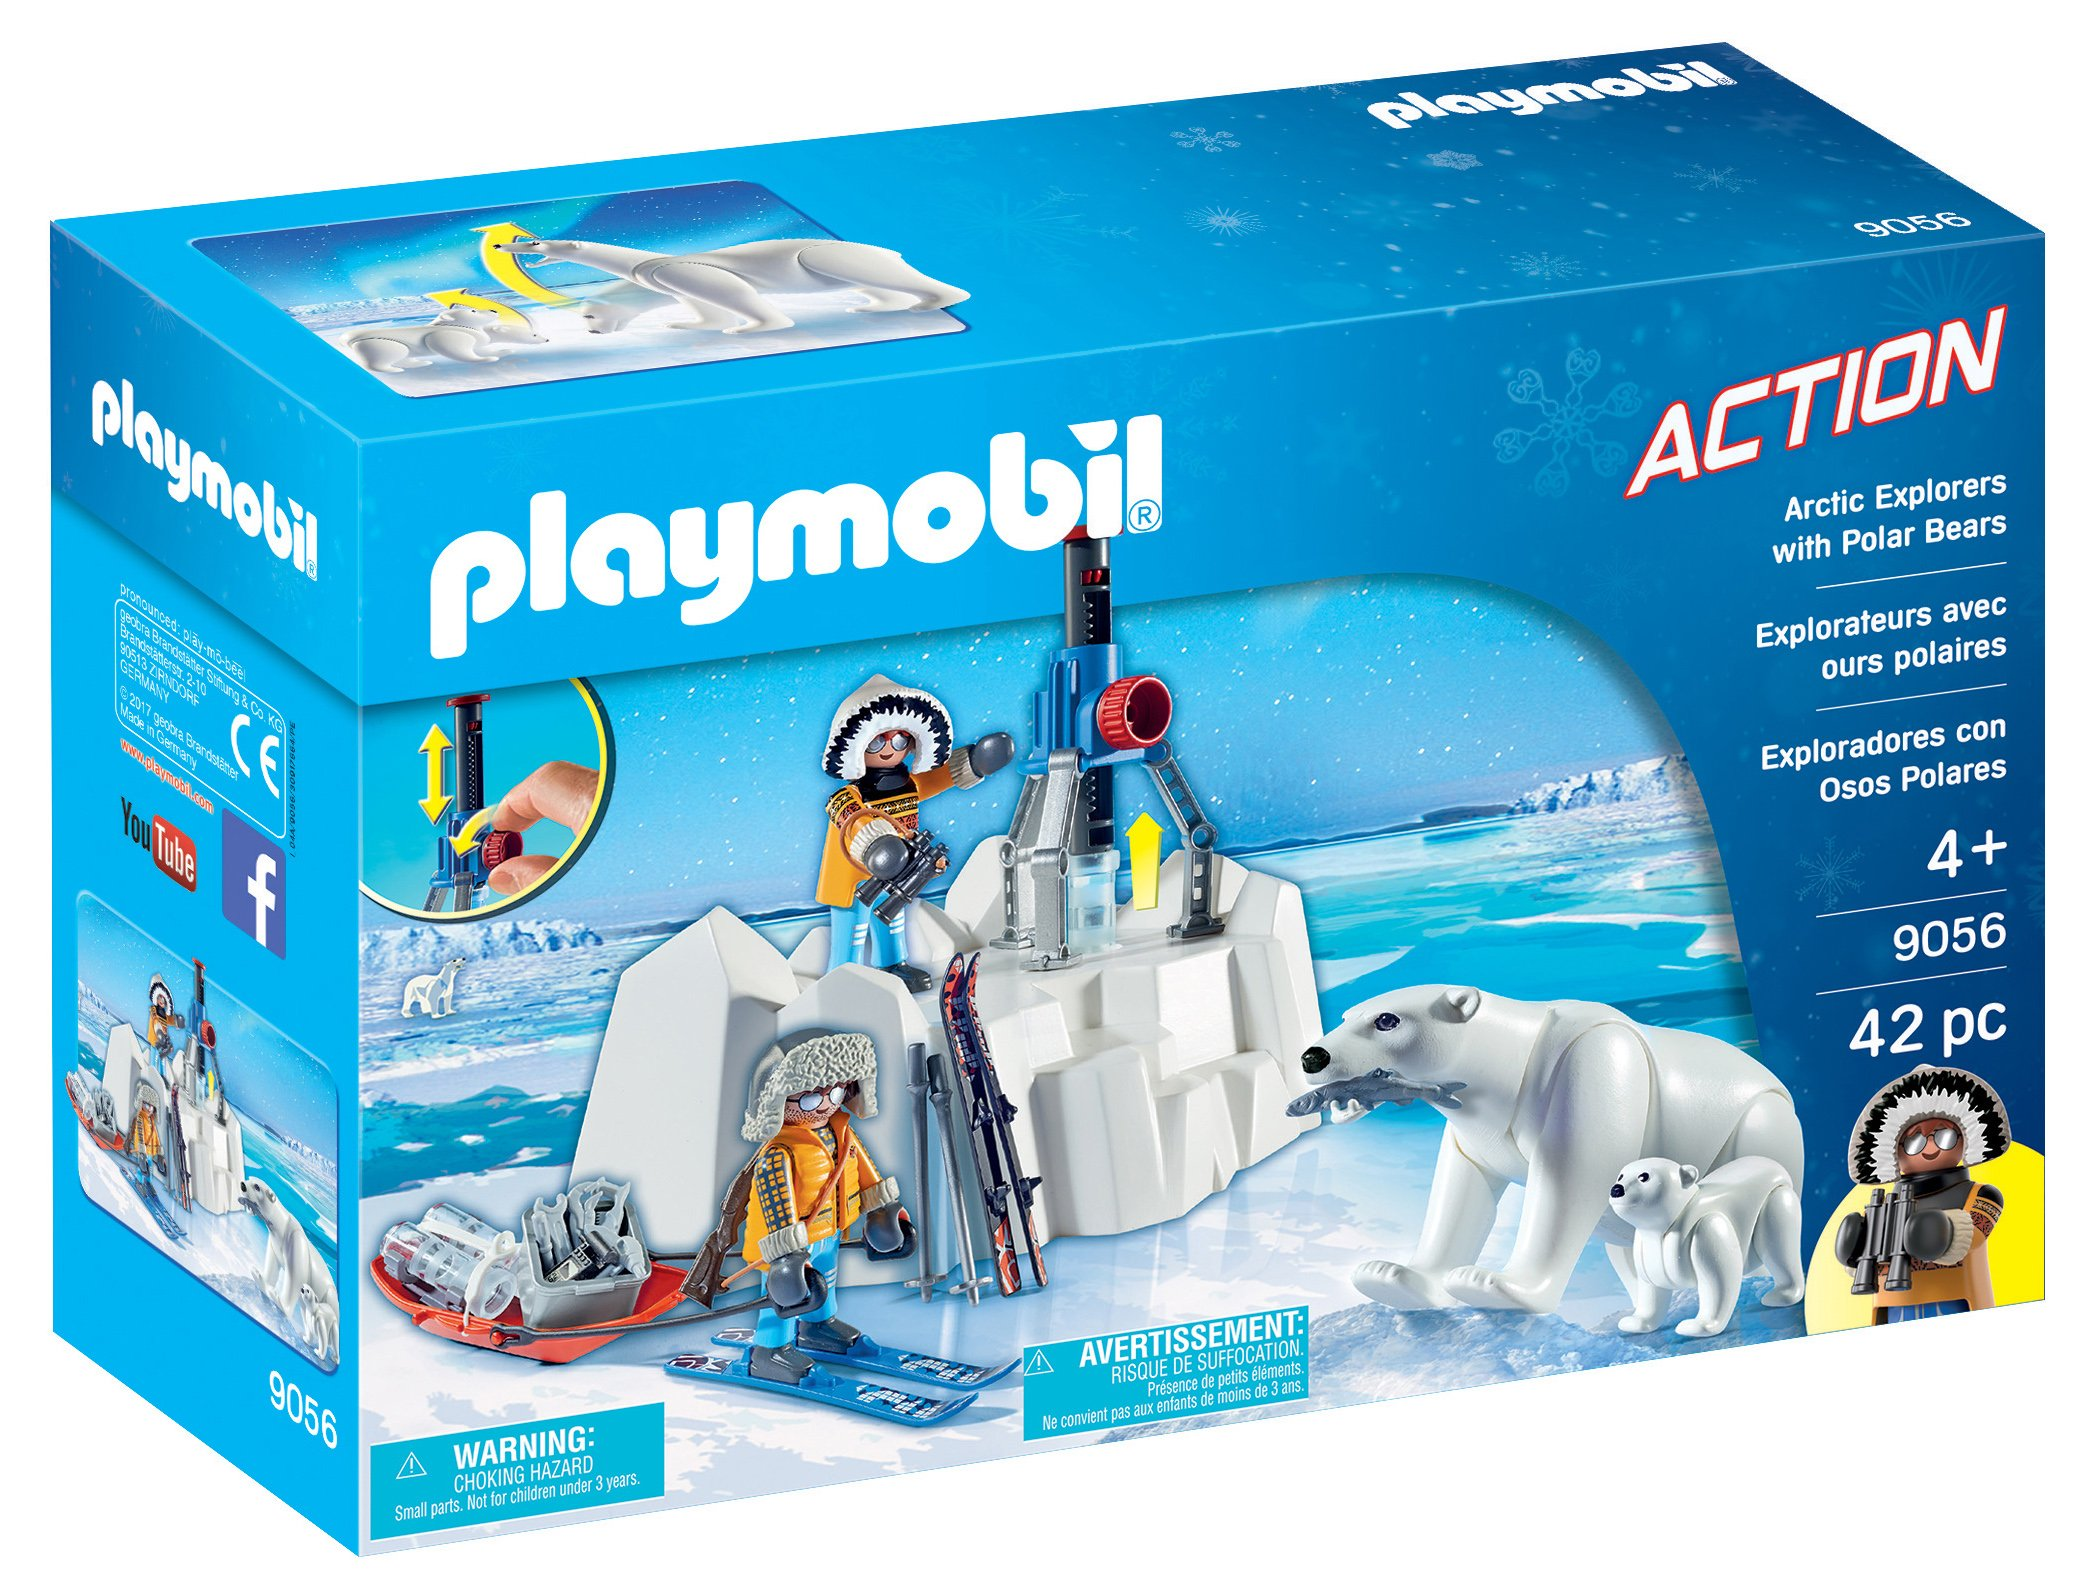 Playmobil 9056 Arctic Explorers with Polar Bears